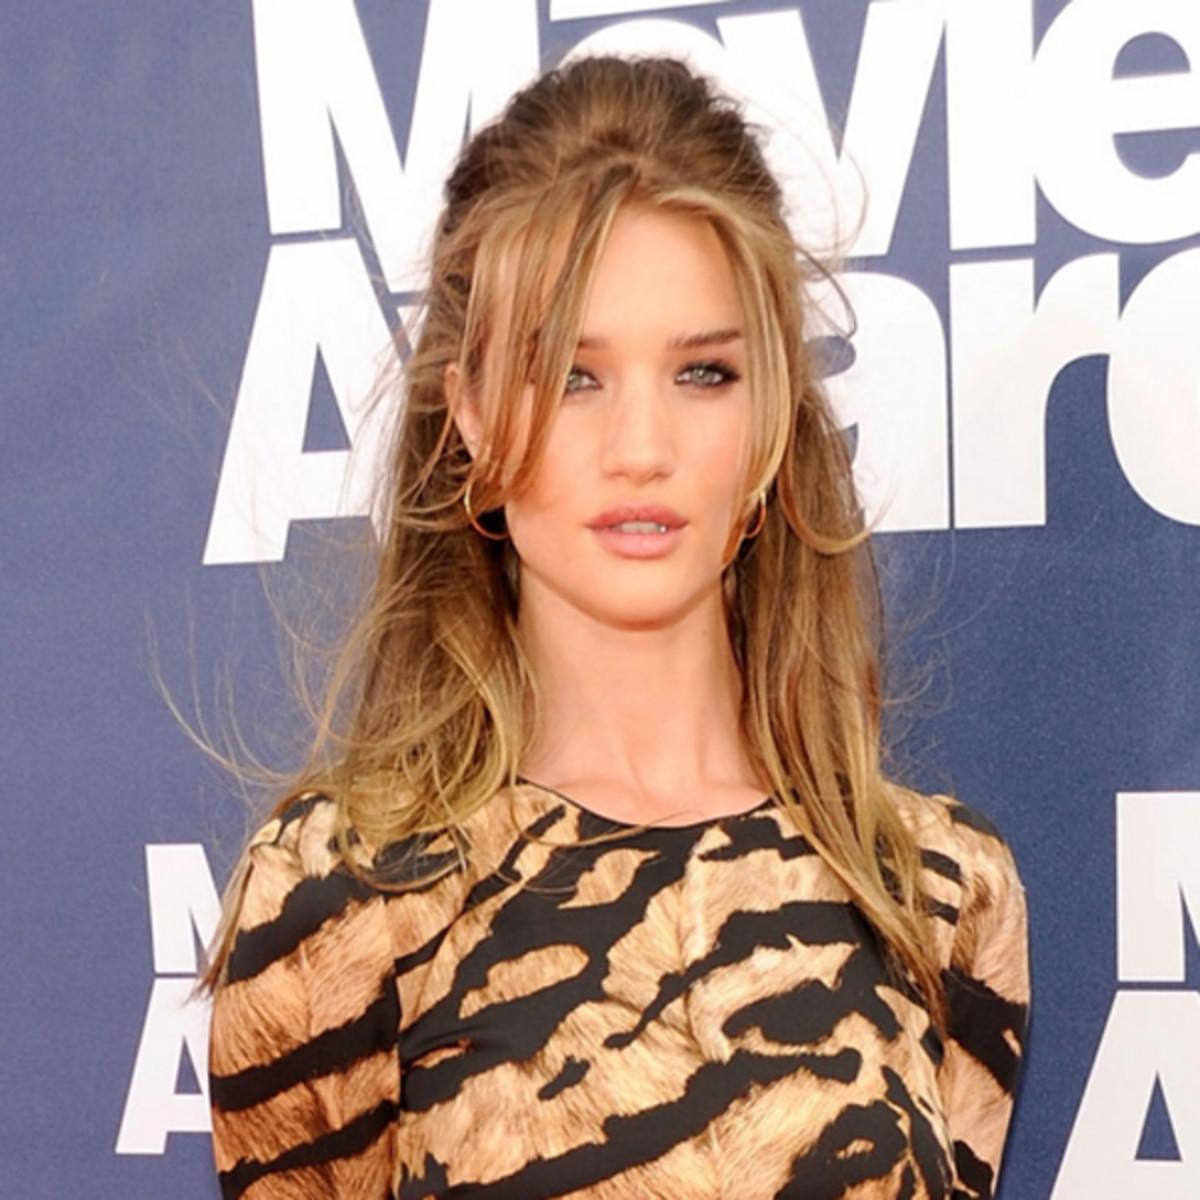 MTV Movie Awards 2011 - Rosie Huntington-Whiteley